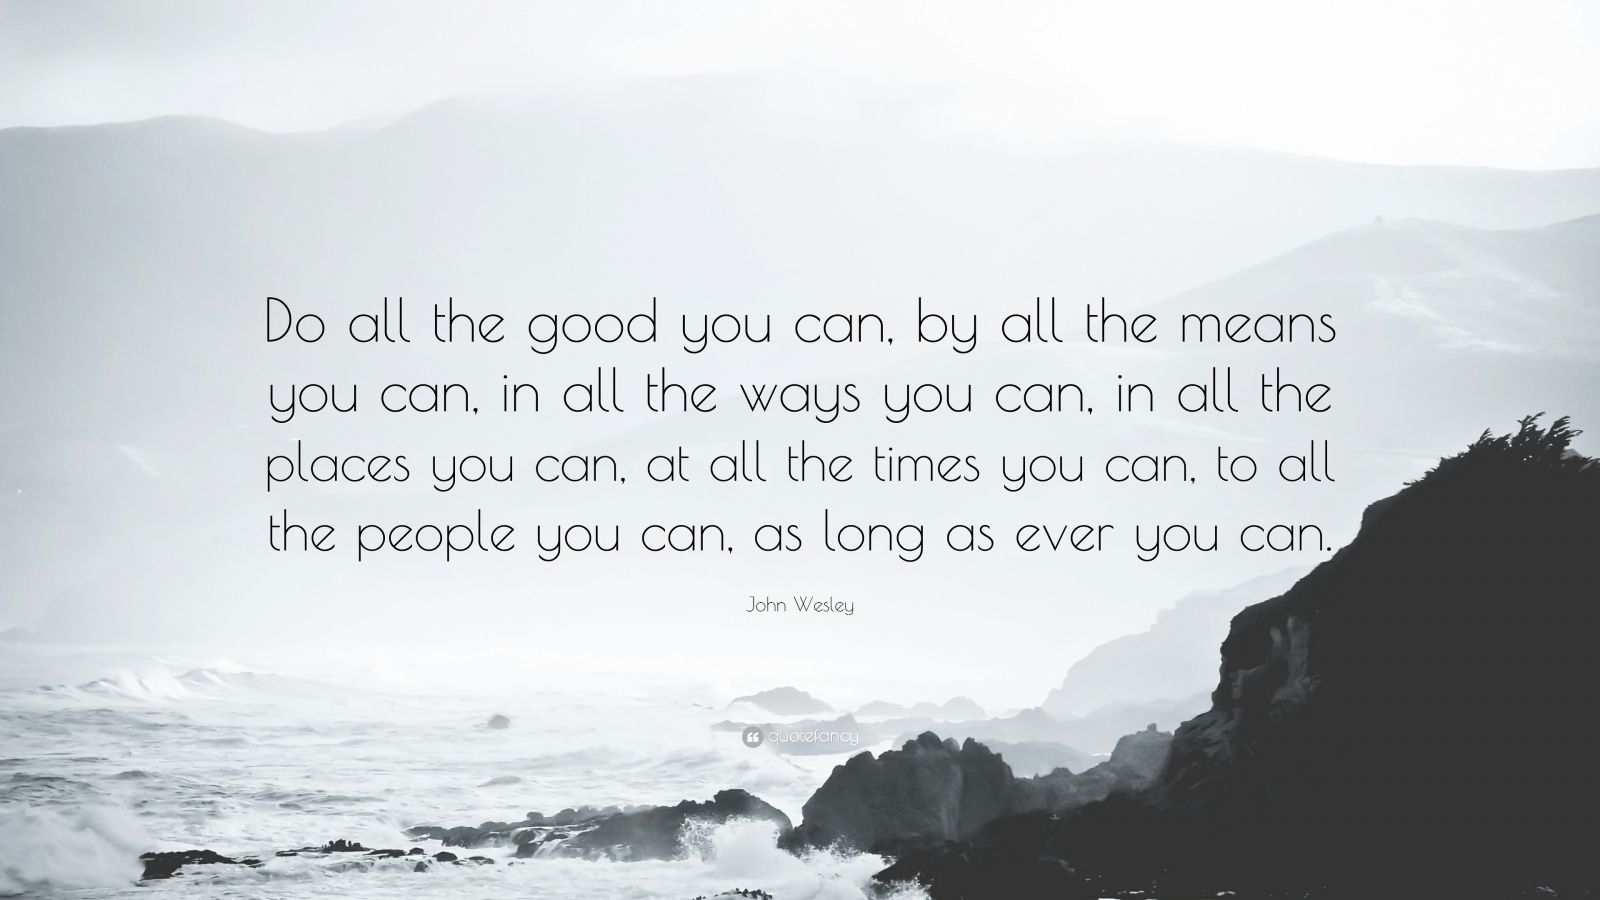 Overcoming Bible Quote Wallpapers John Wesley Quote Do All The Good You Can By All The